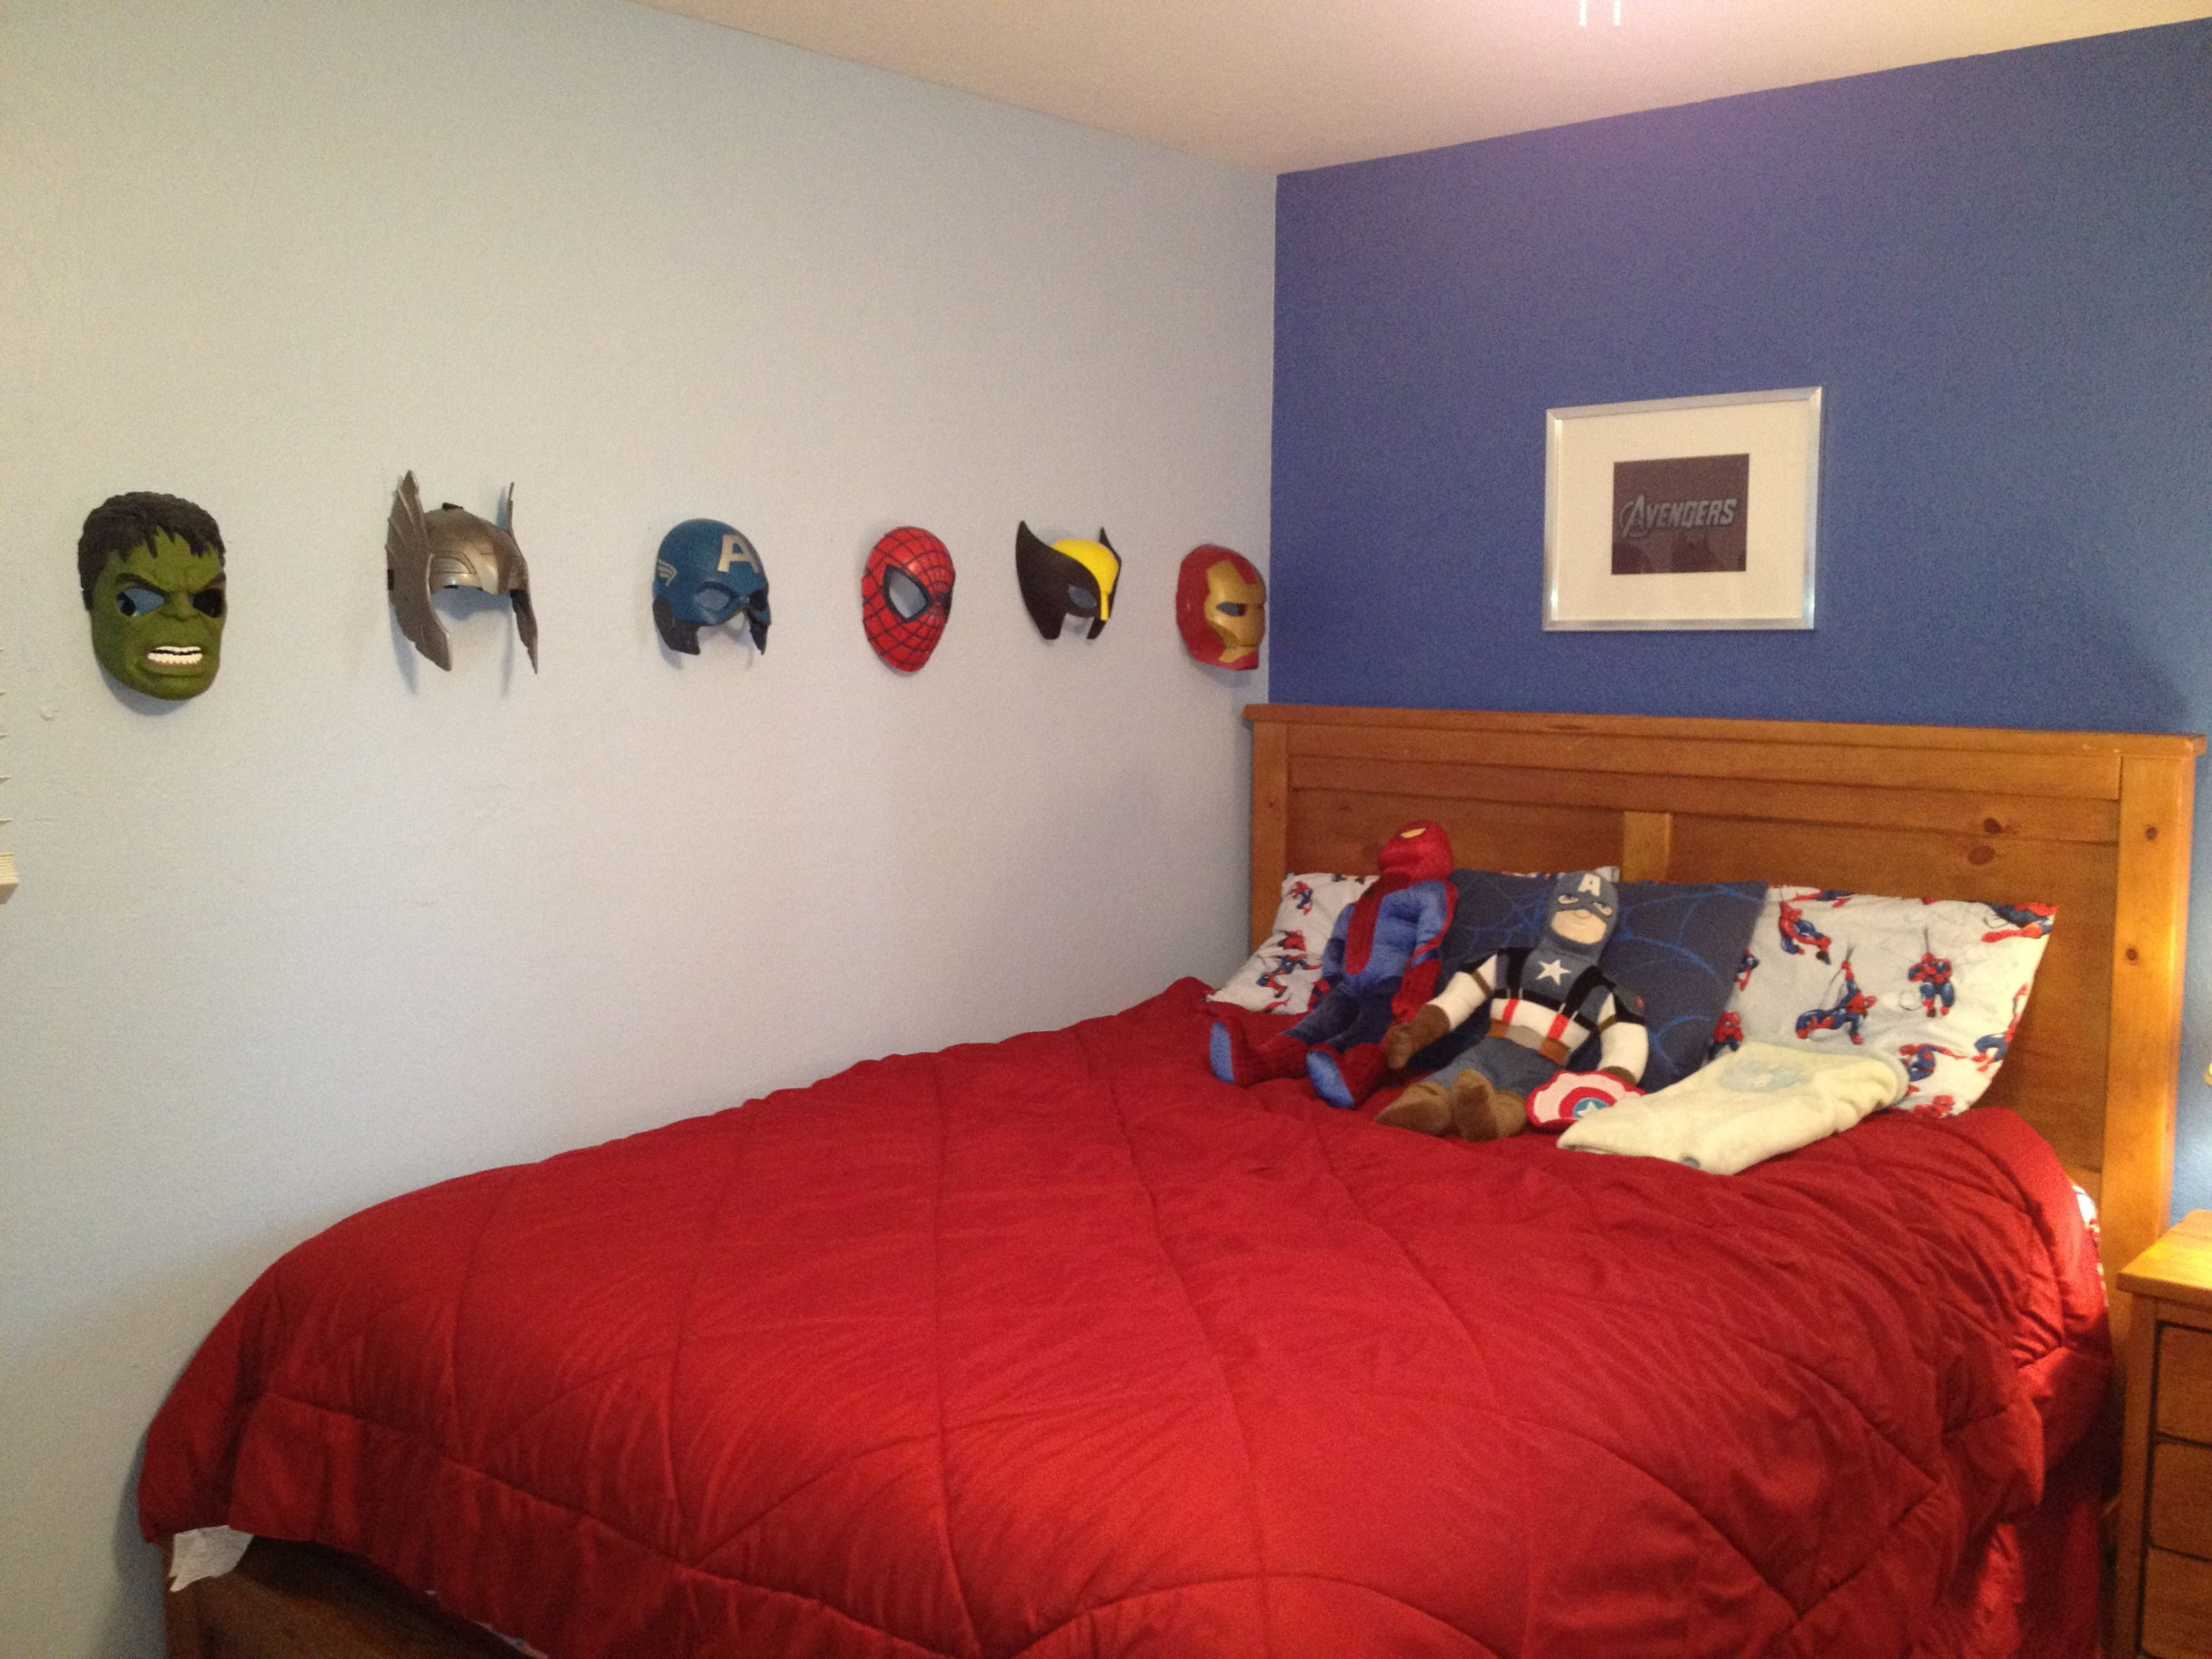 Avengeru0027s Boys Bedroom. Use Masks As Decoration By Hanging On Hooks. Frame  Comic Books For More Wall Art.